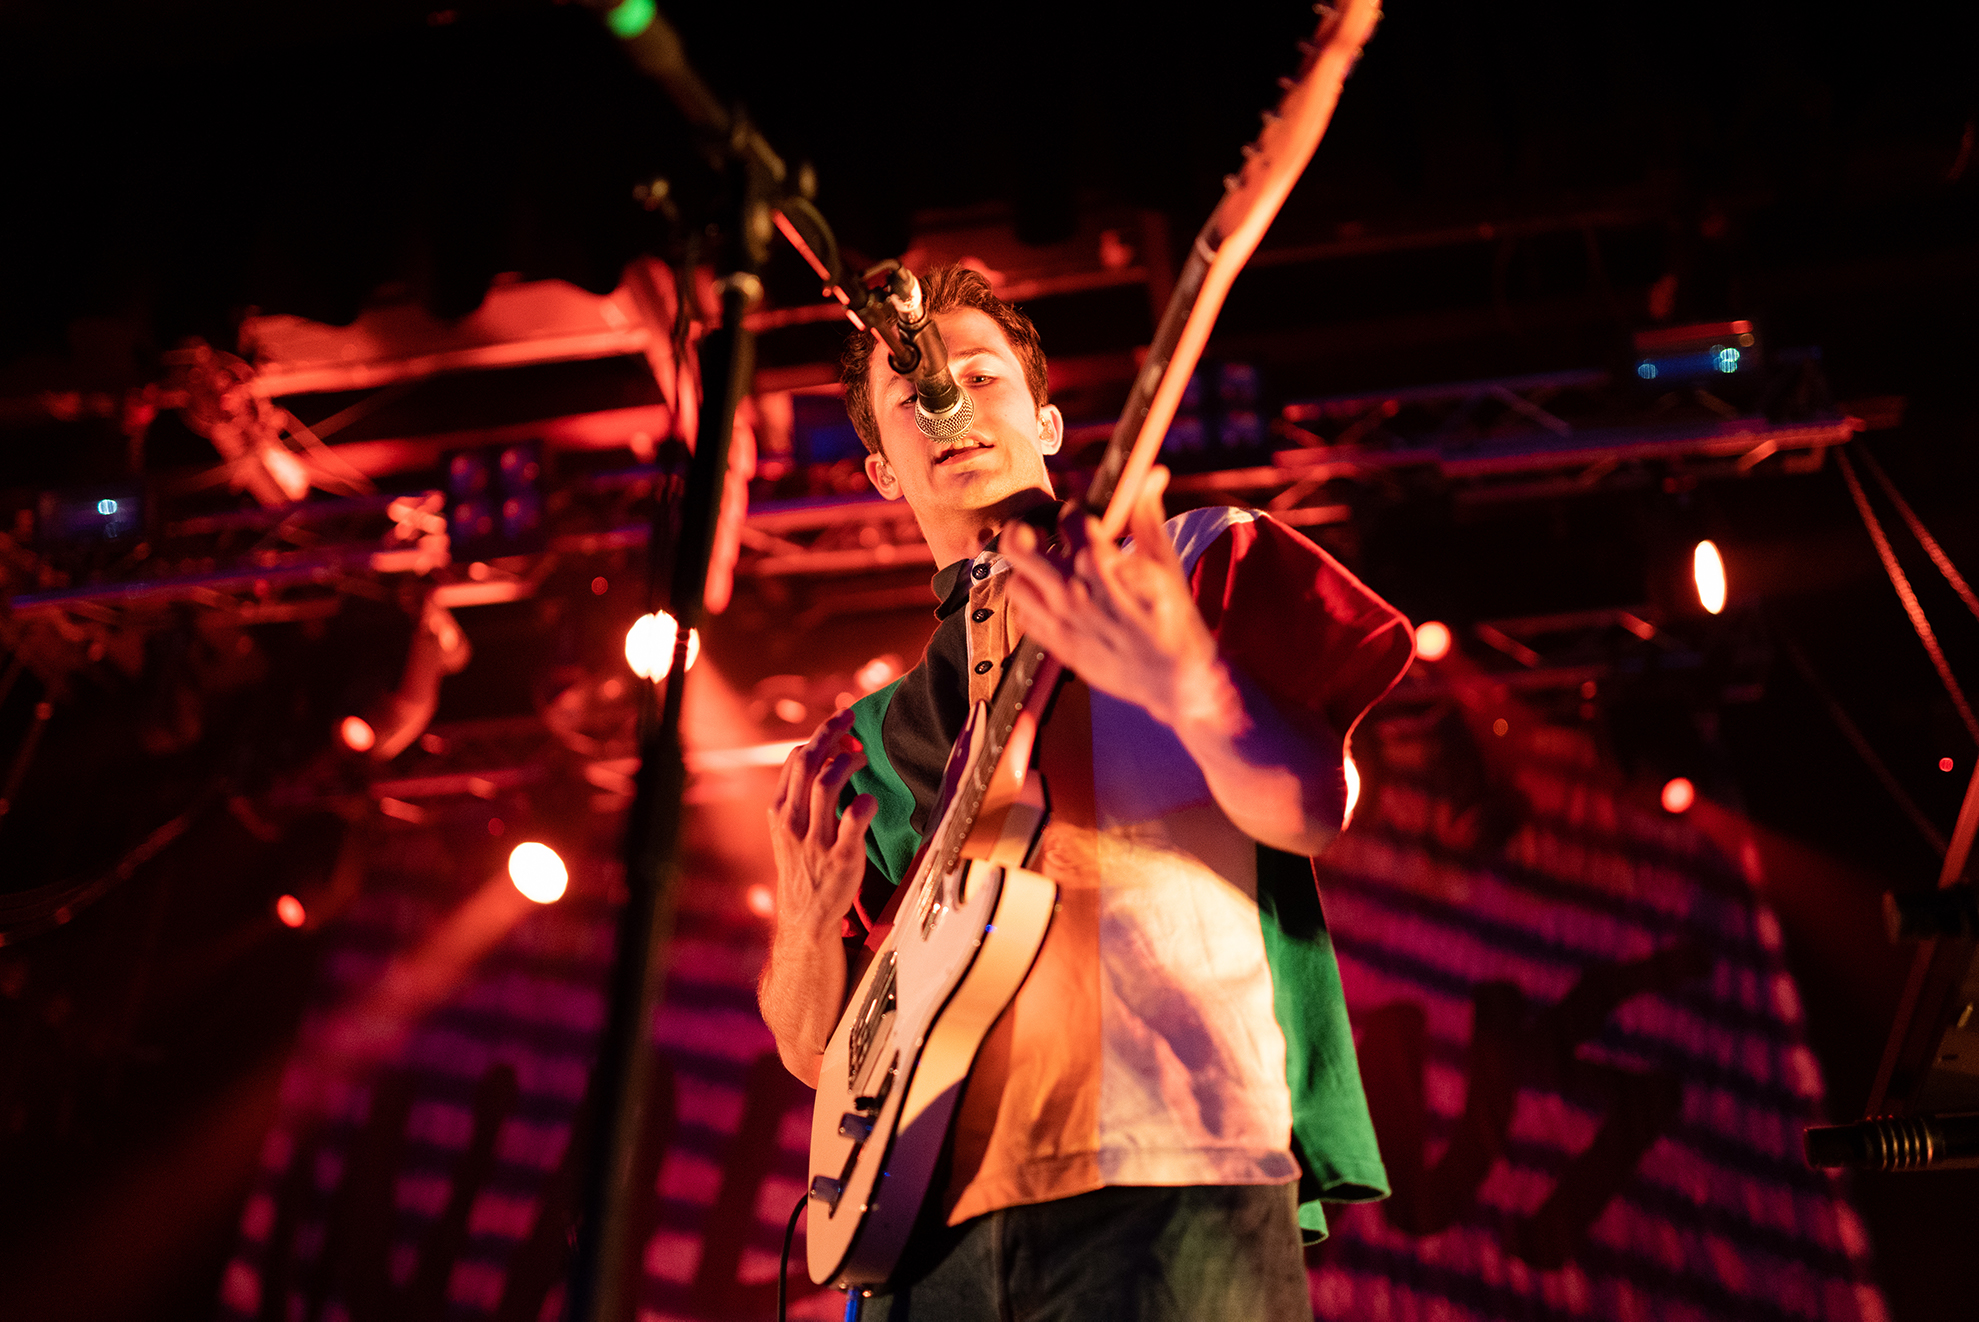 Wallows - Electric Brixton - 06_06_19 - Milly McAlister 12.jpg